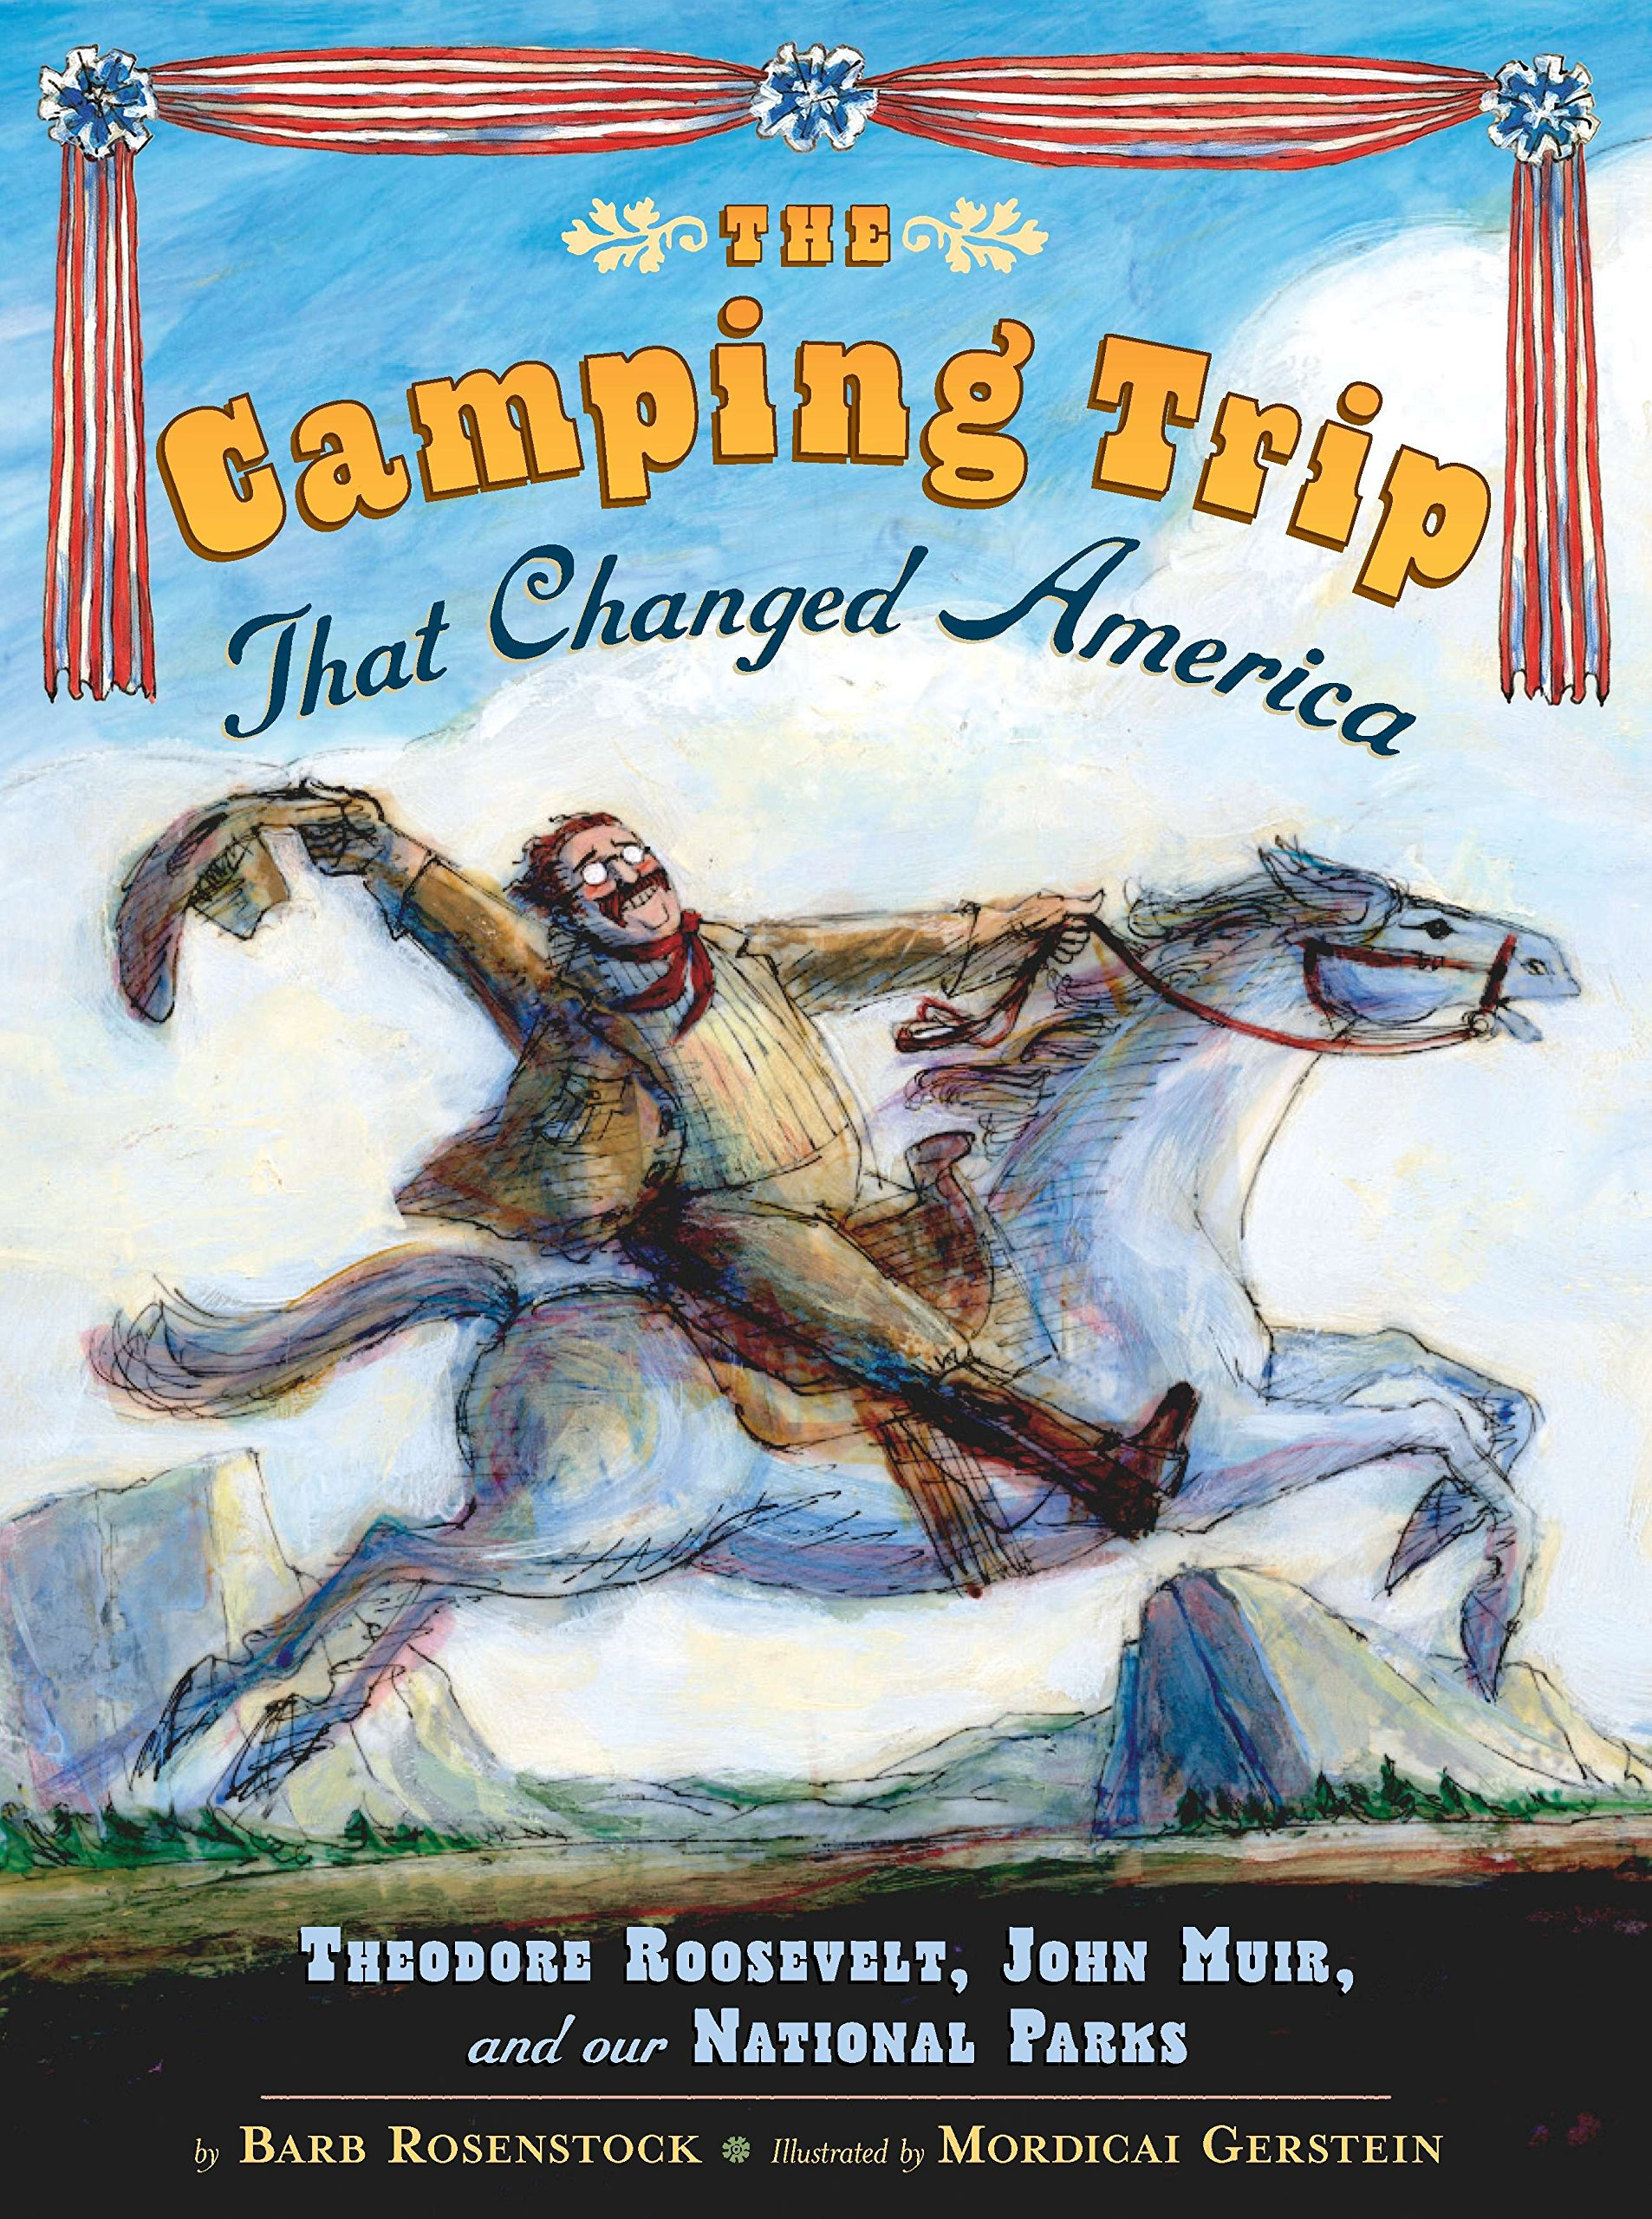 363bcbaad36 The Camping Trip that Changed America  Theodore Roosevelt